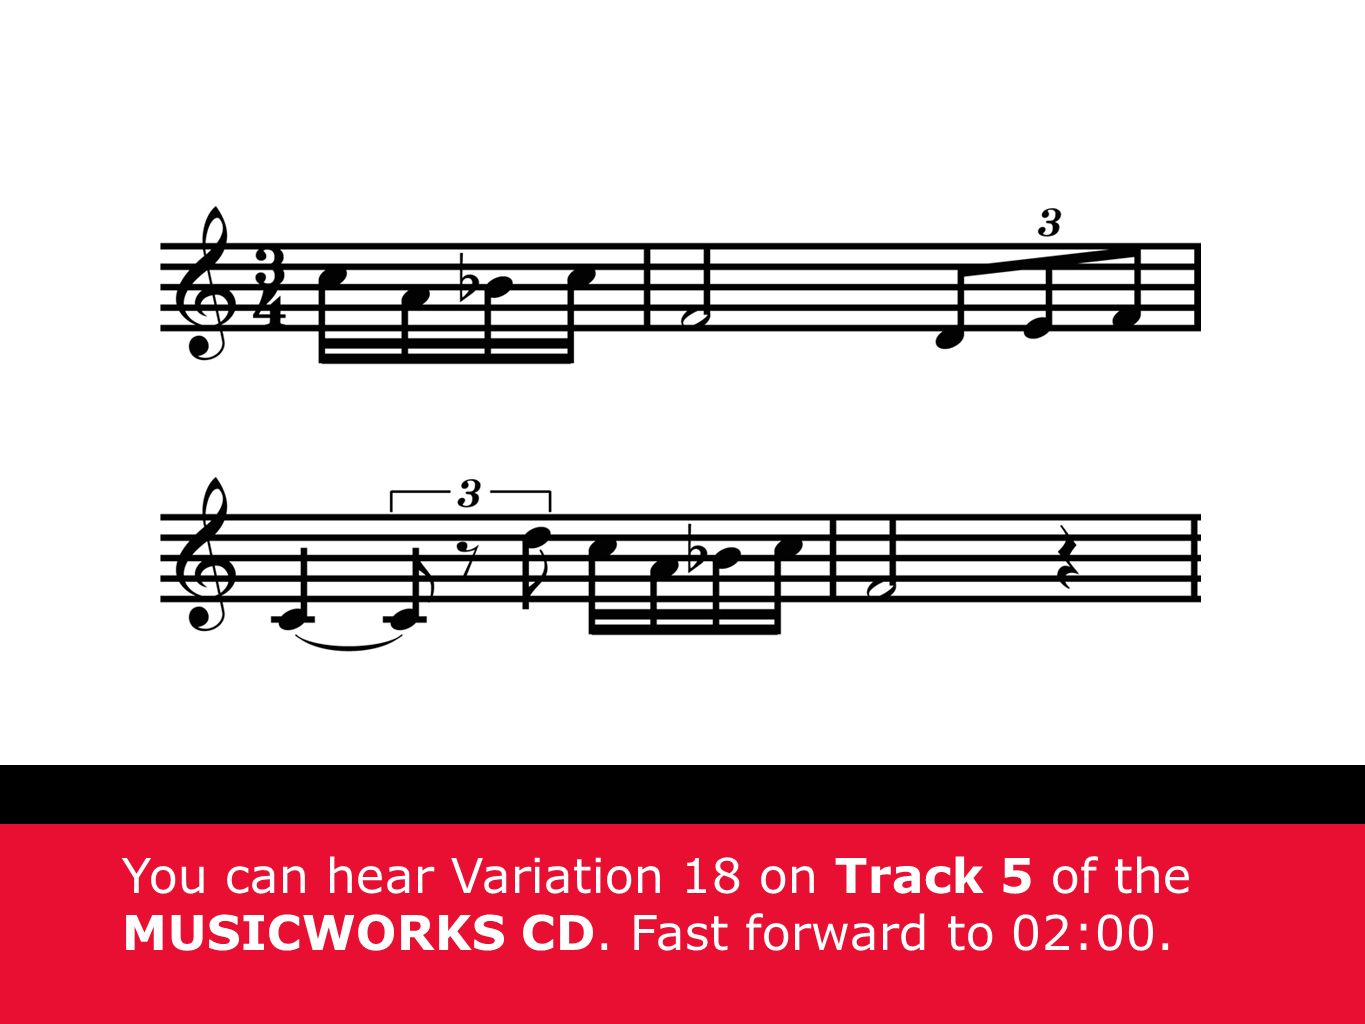 You can hear Variation 18 on Track 5 of the MUSICWORKS CD. Fast forward to 02:00.